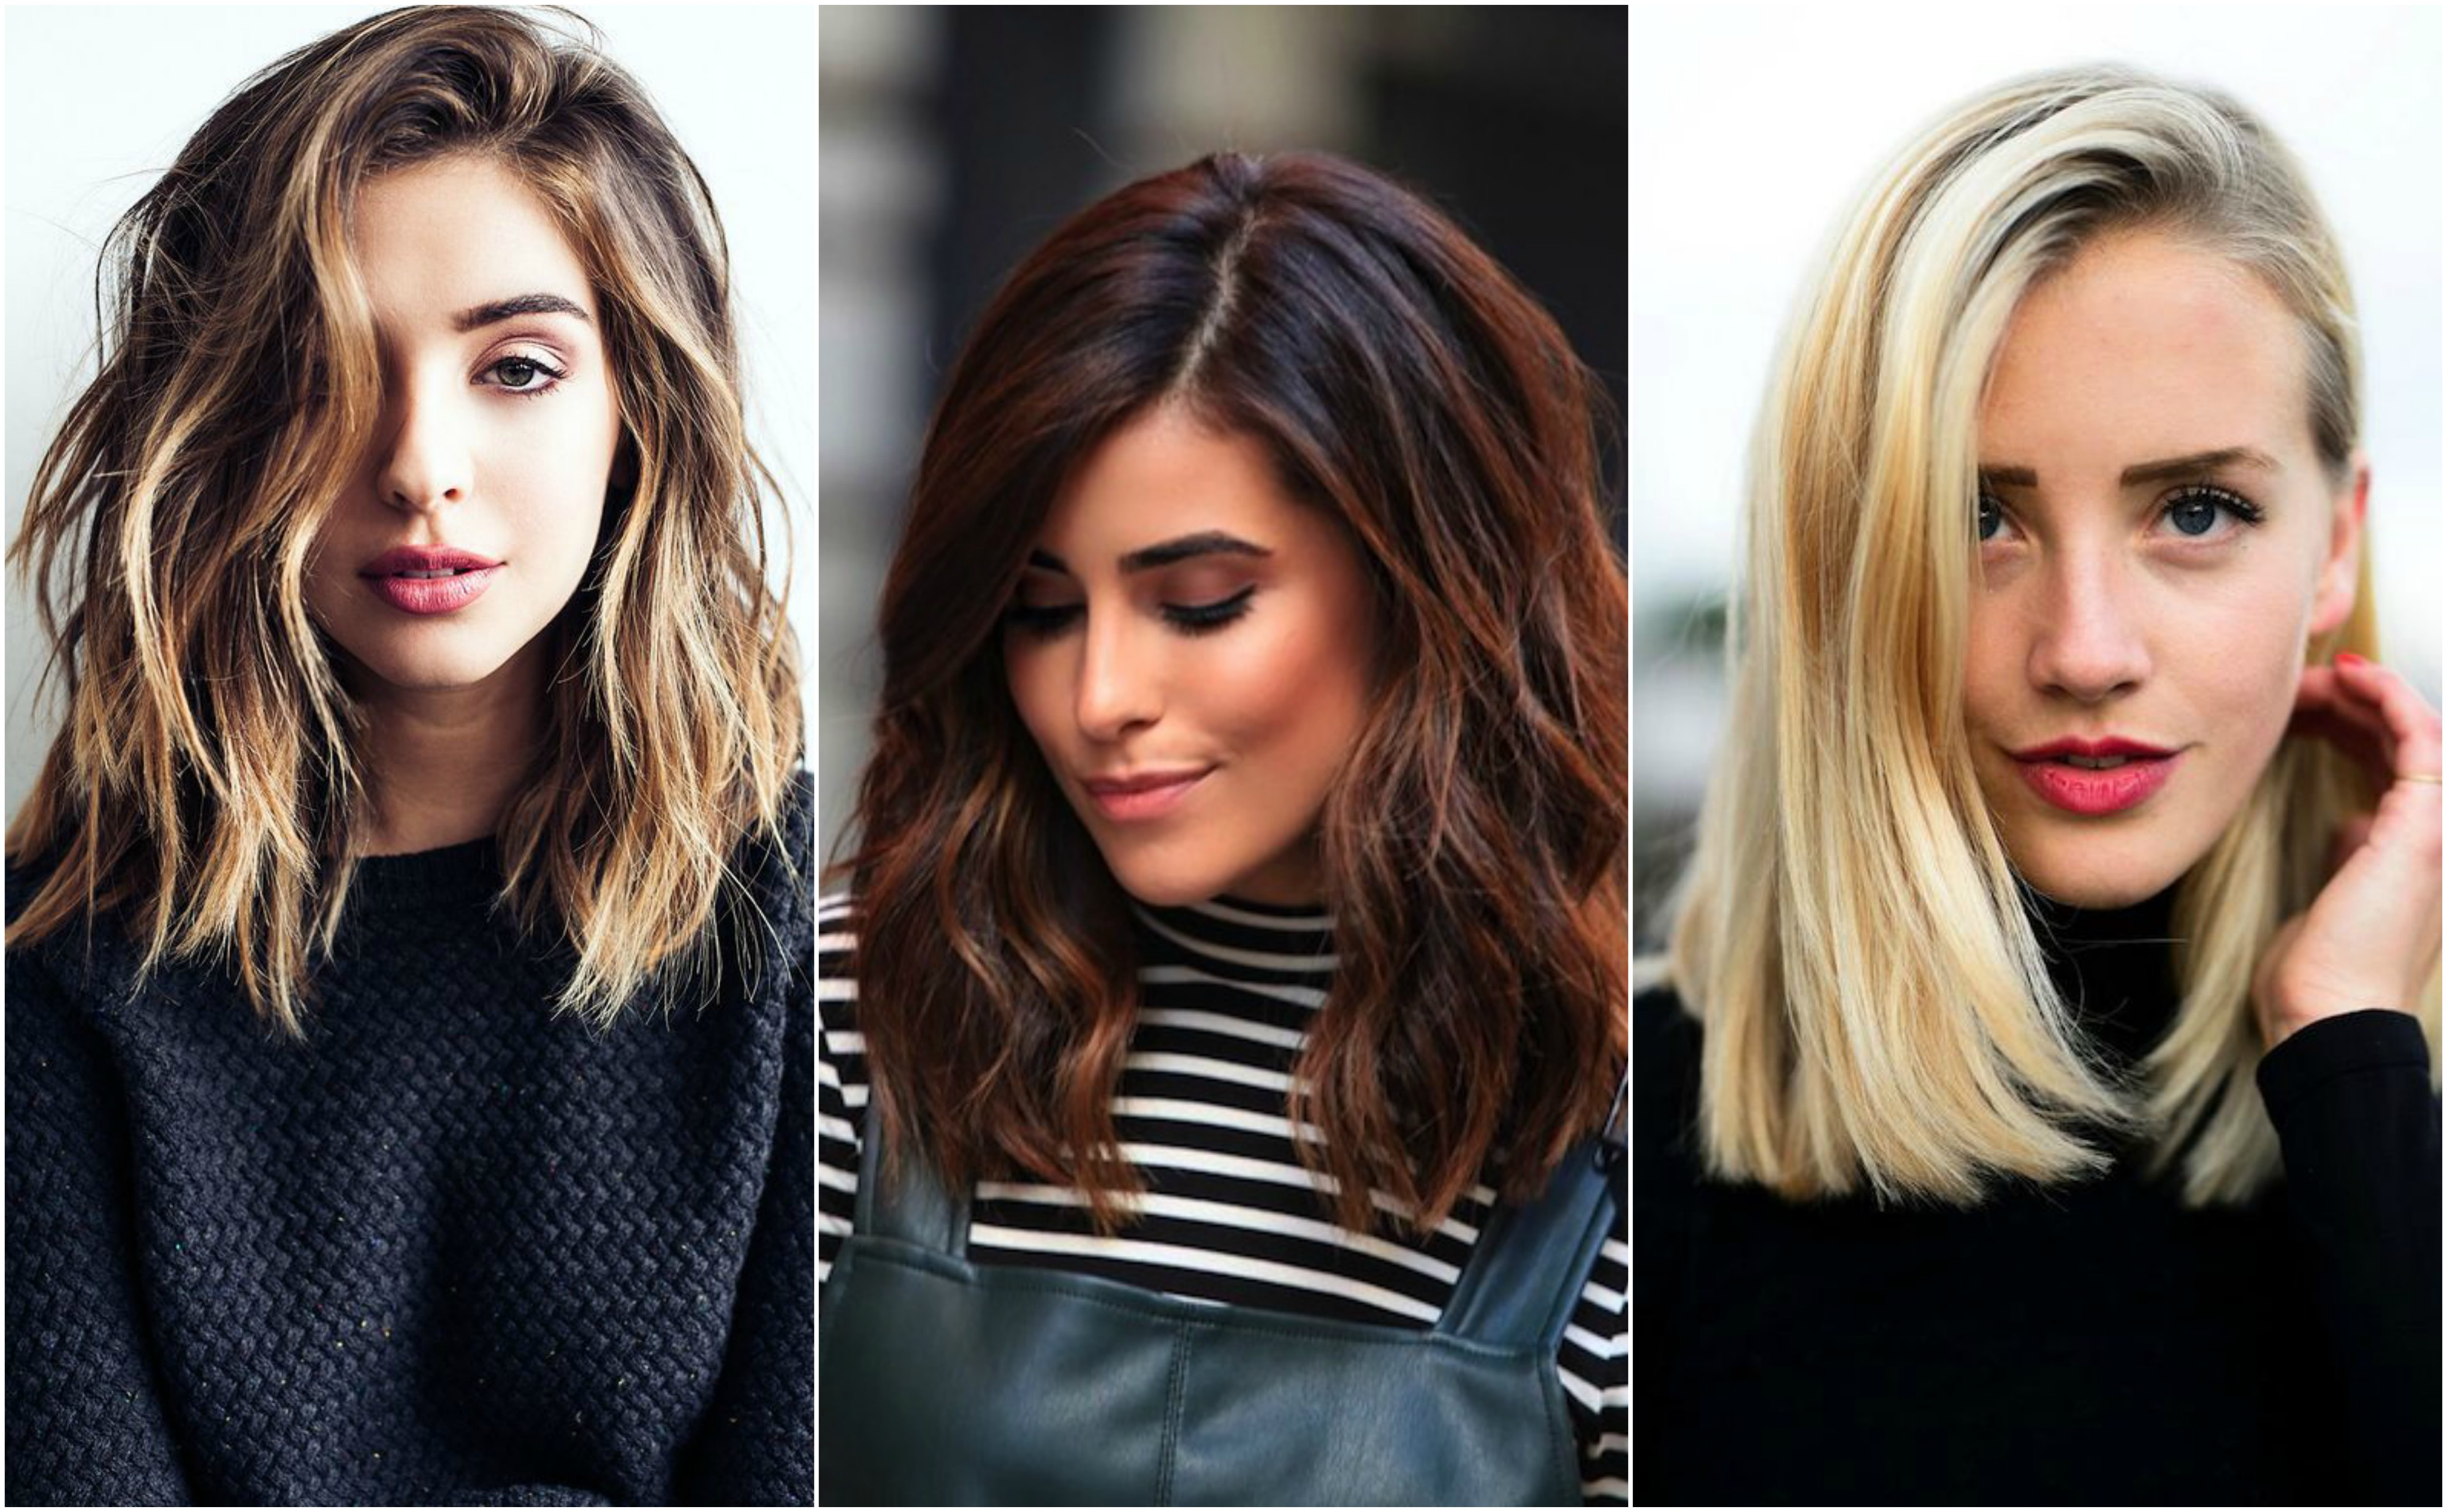 These lob haircuts will make your long-haired friends jealous